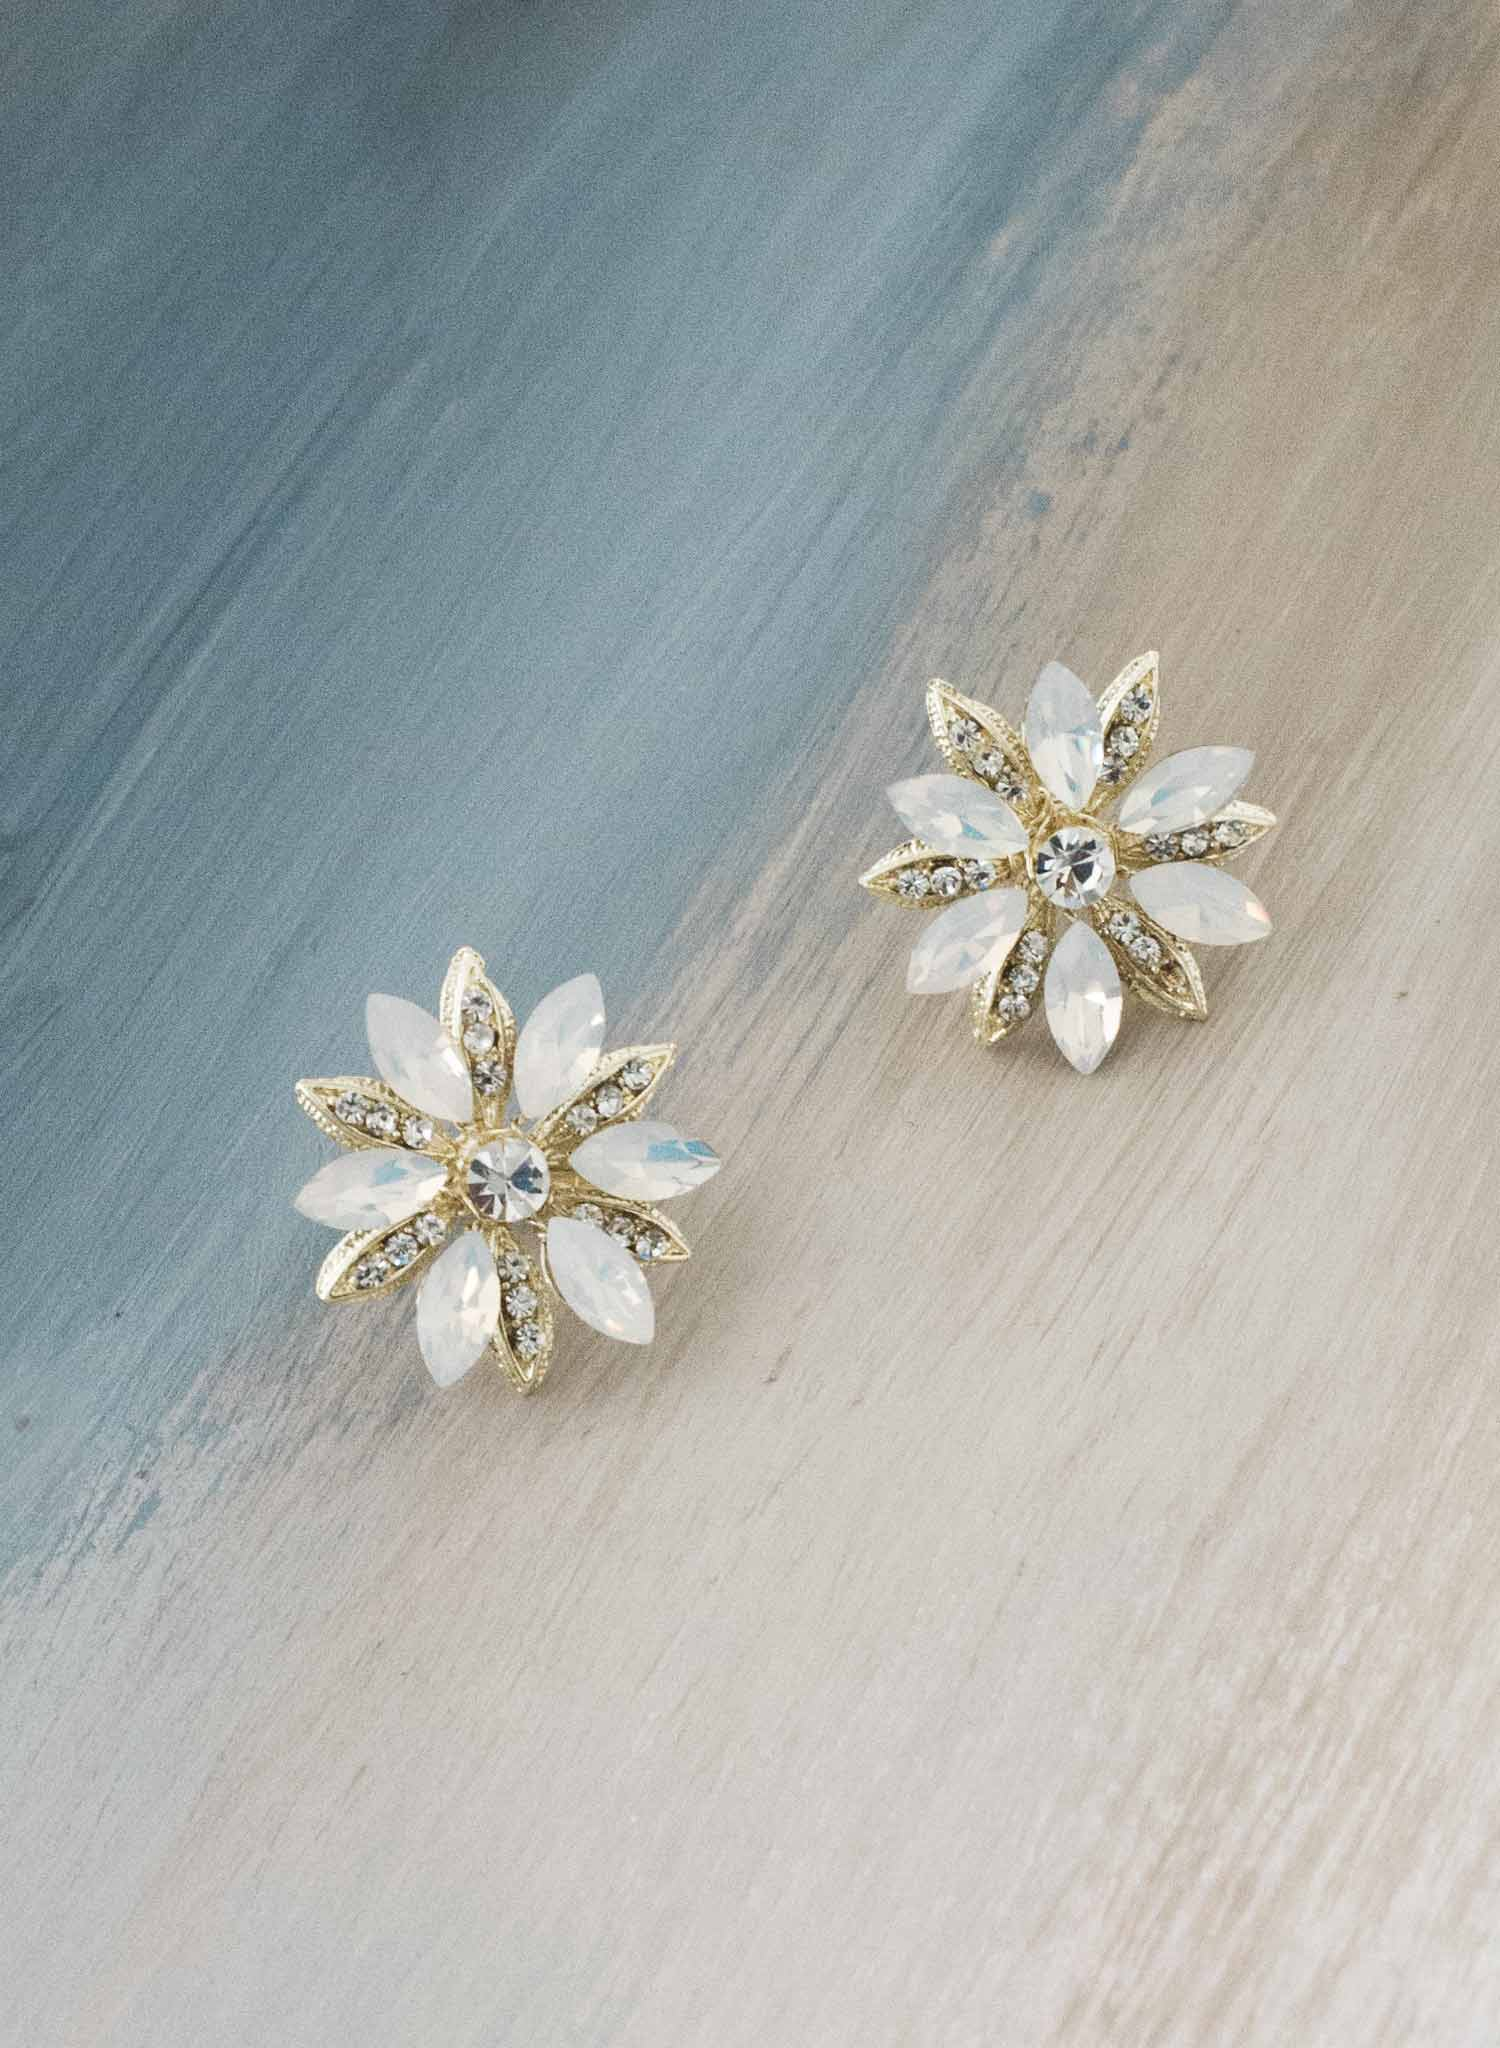 Regal opal starburst earrings - Style #9032